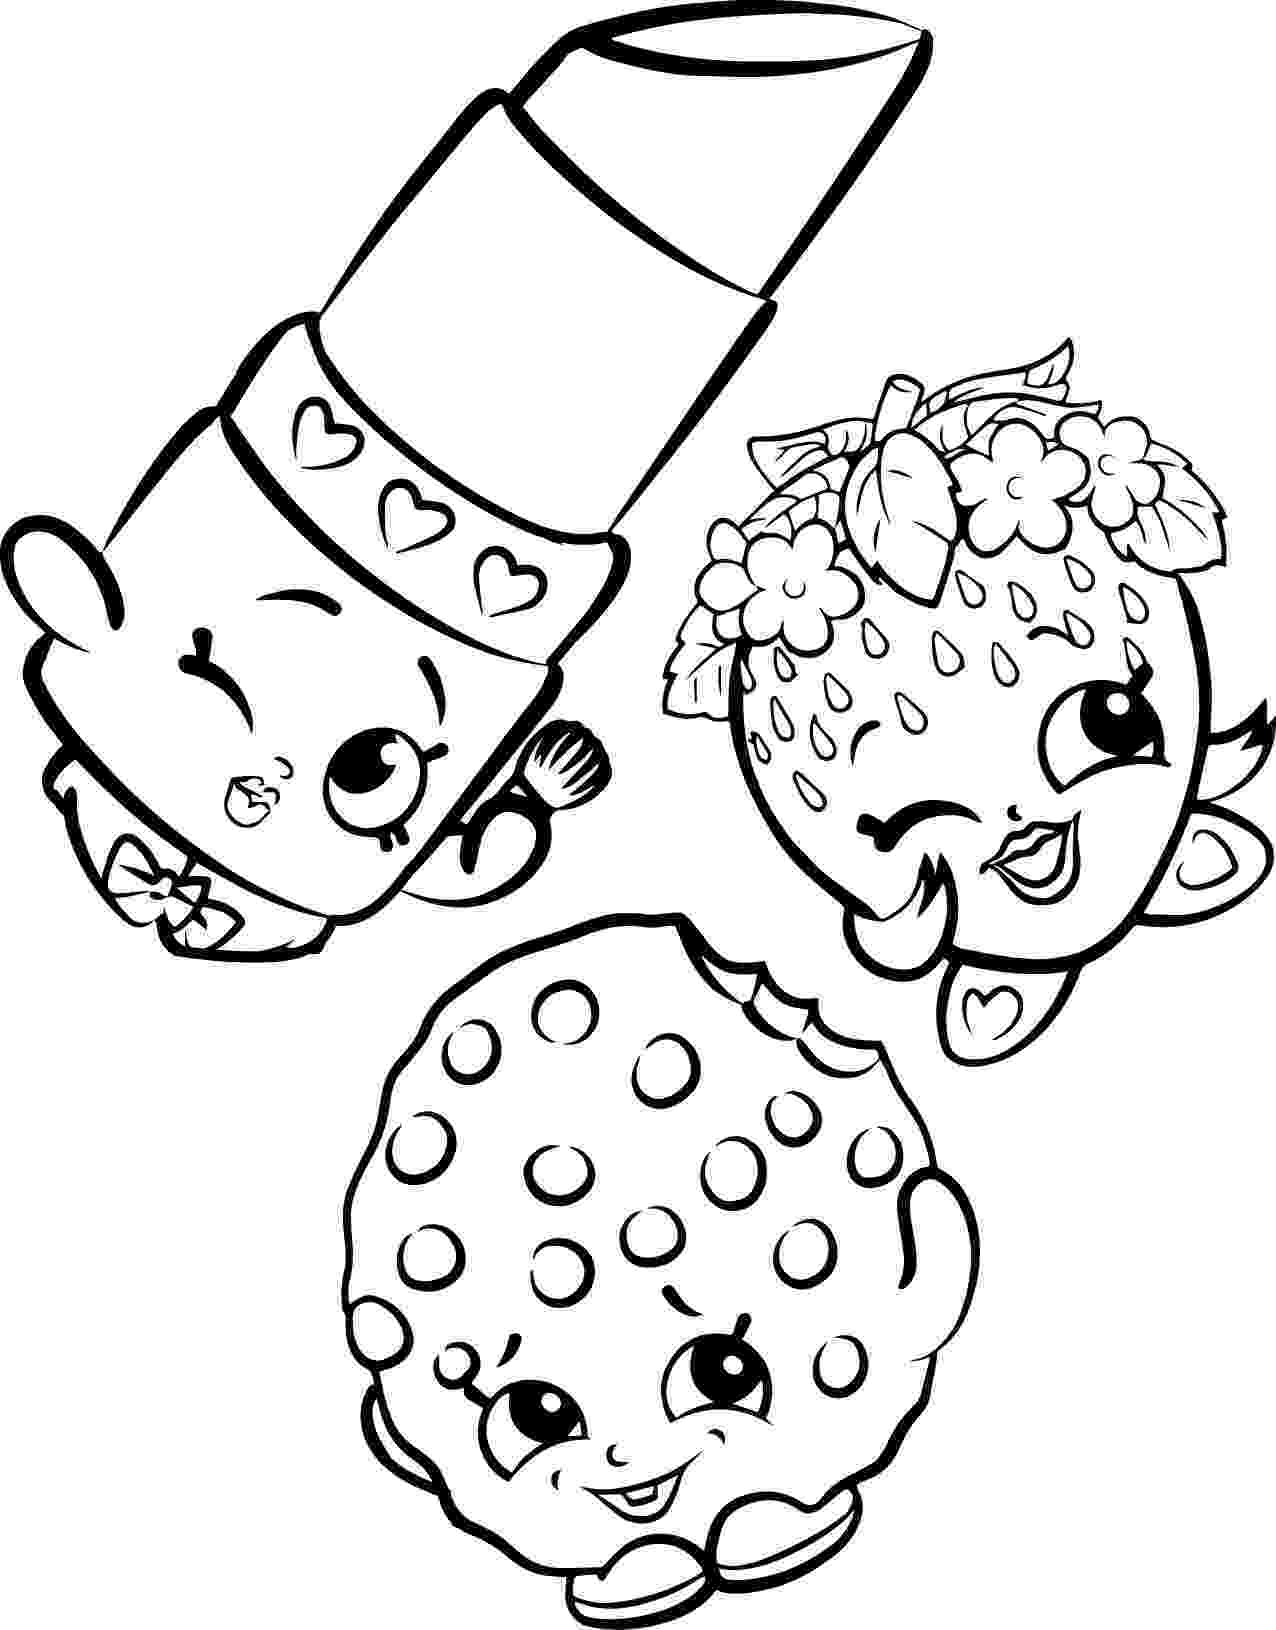 coloring pages shopkin shopkins coloring pages best coloring pages for kids shopkin pages coloring